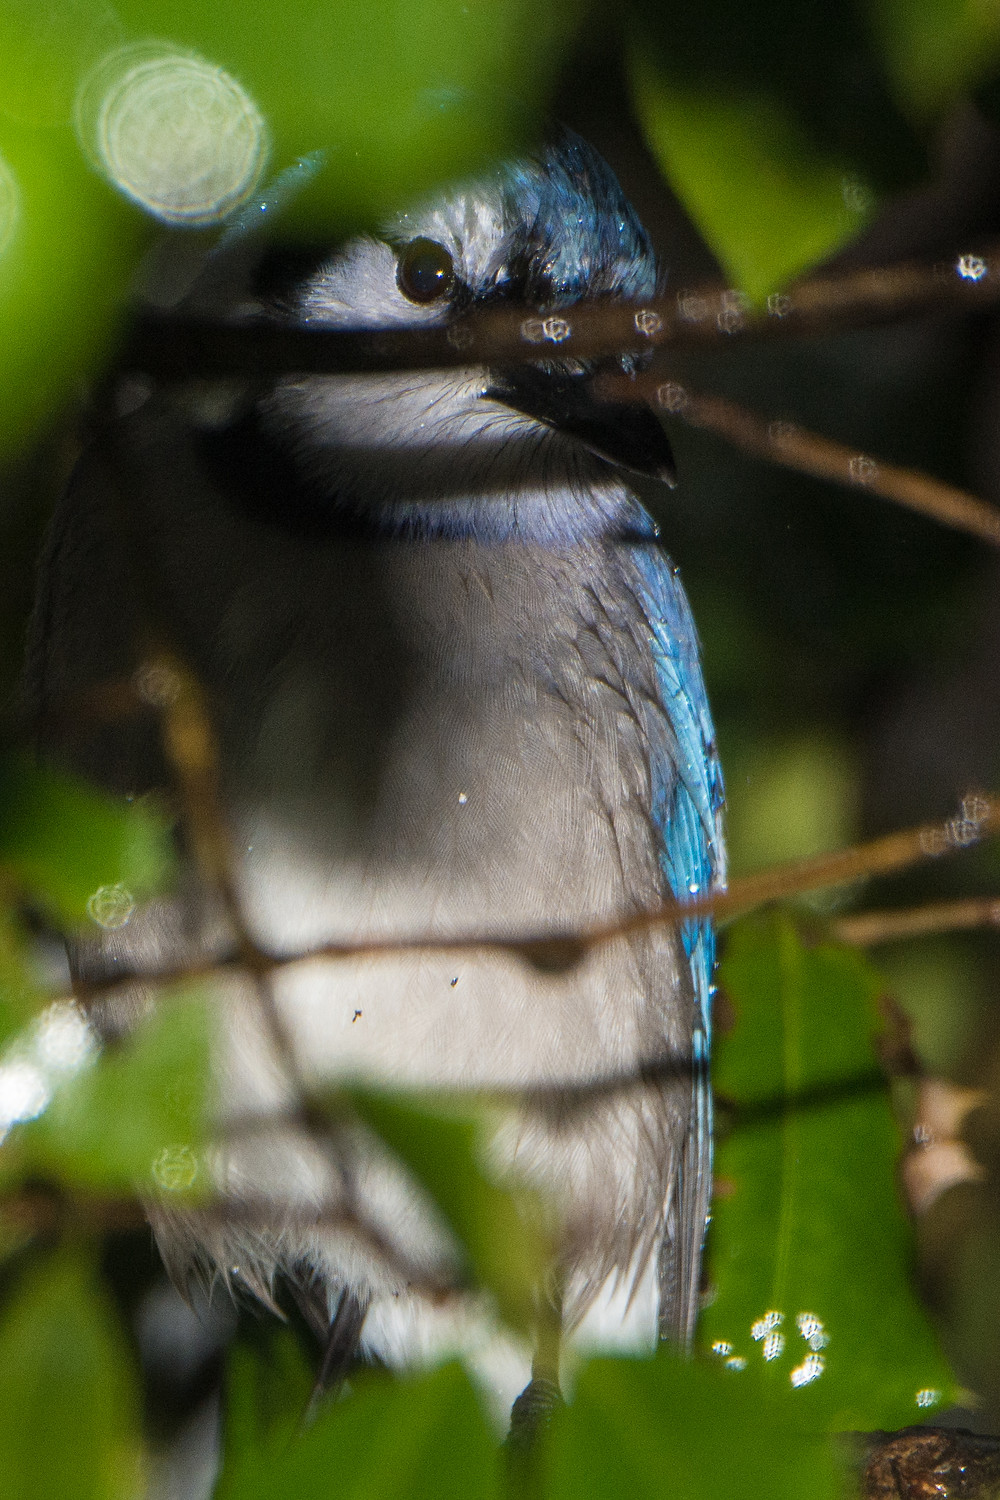 Blue Jay, wet, hiding amongst branches. Annapolis, MD